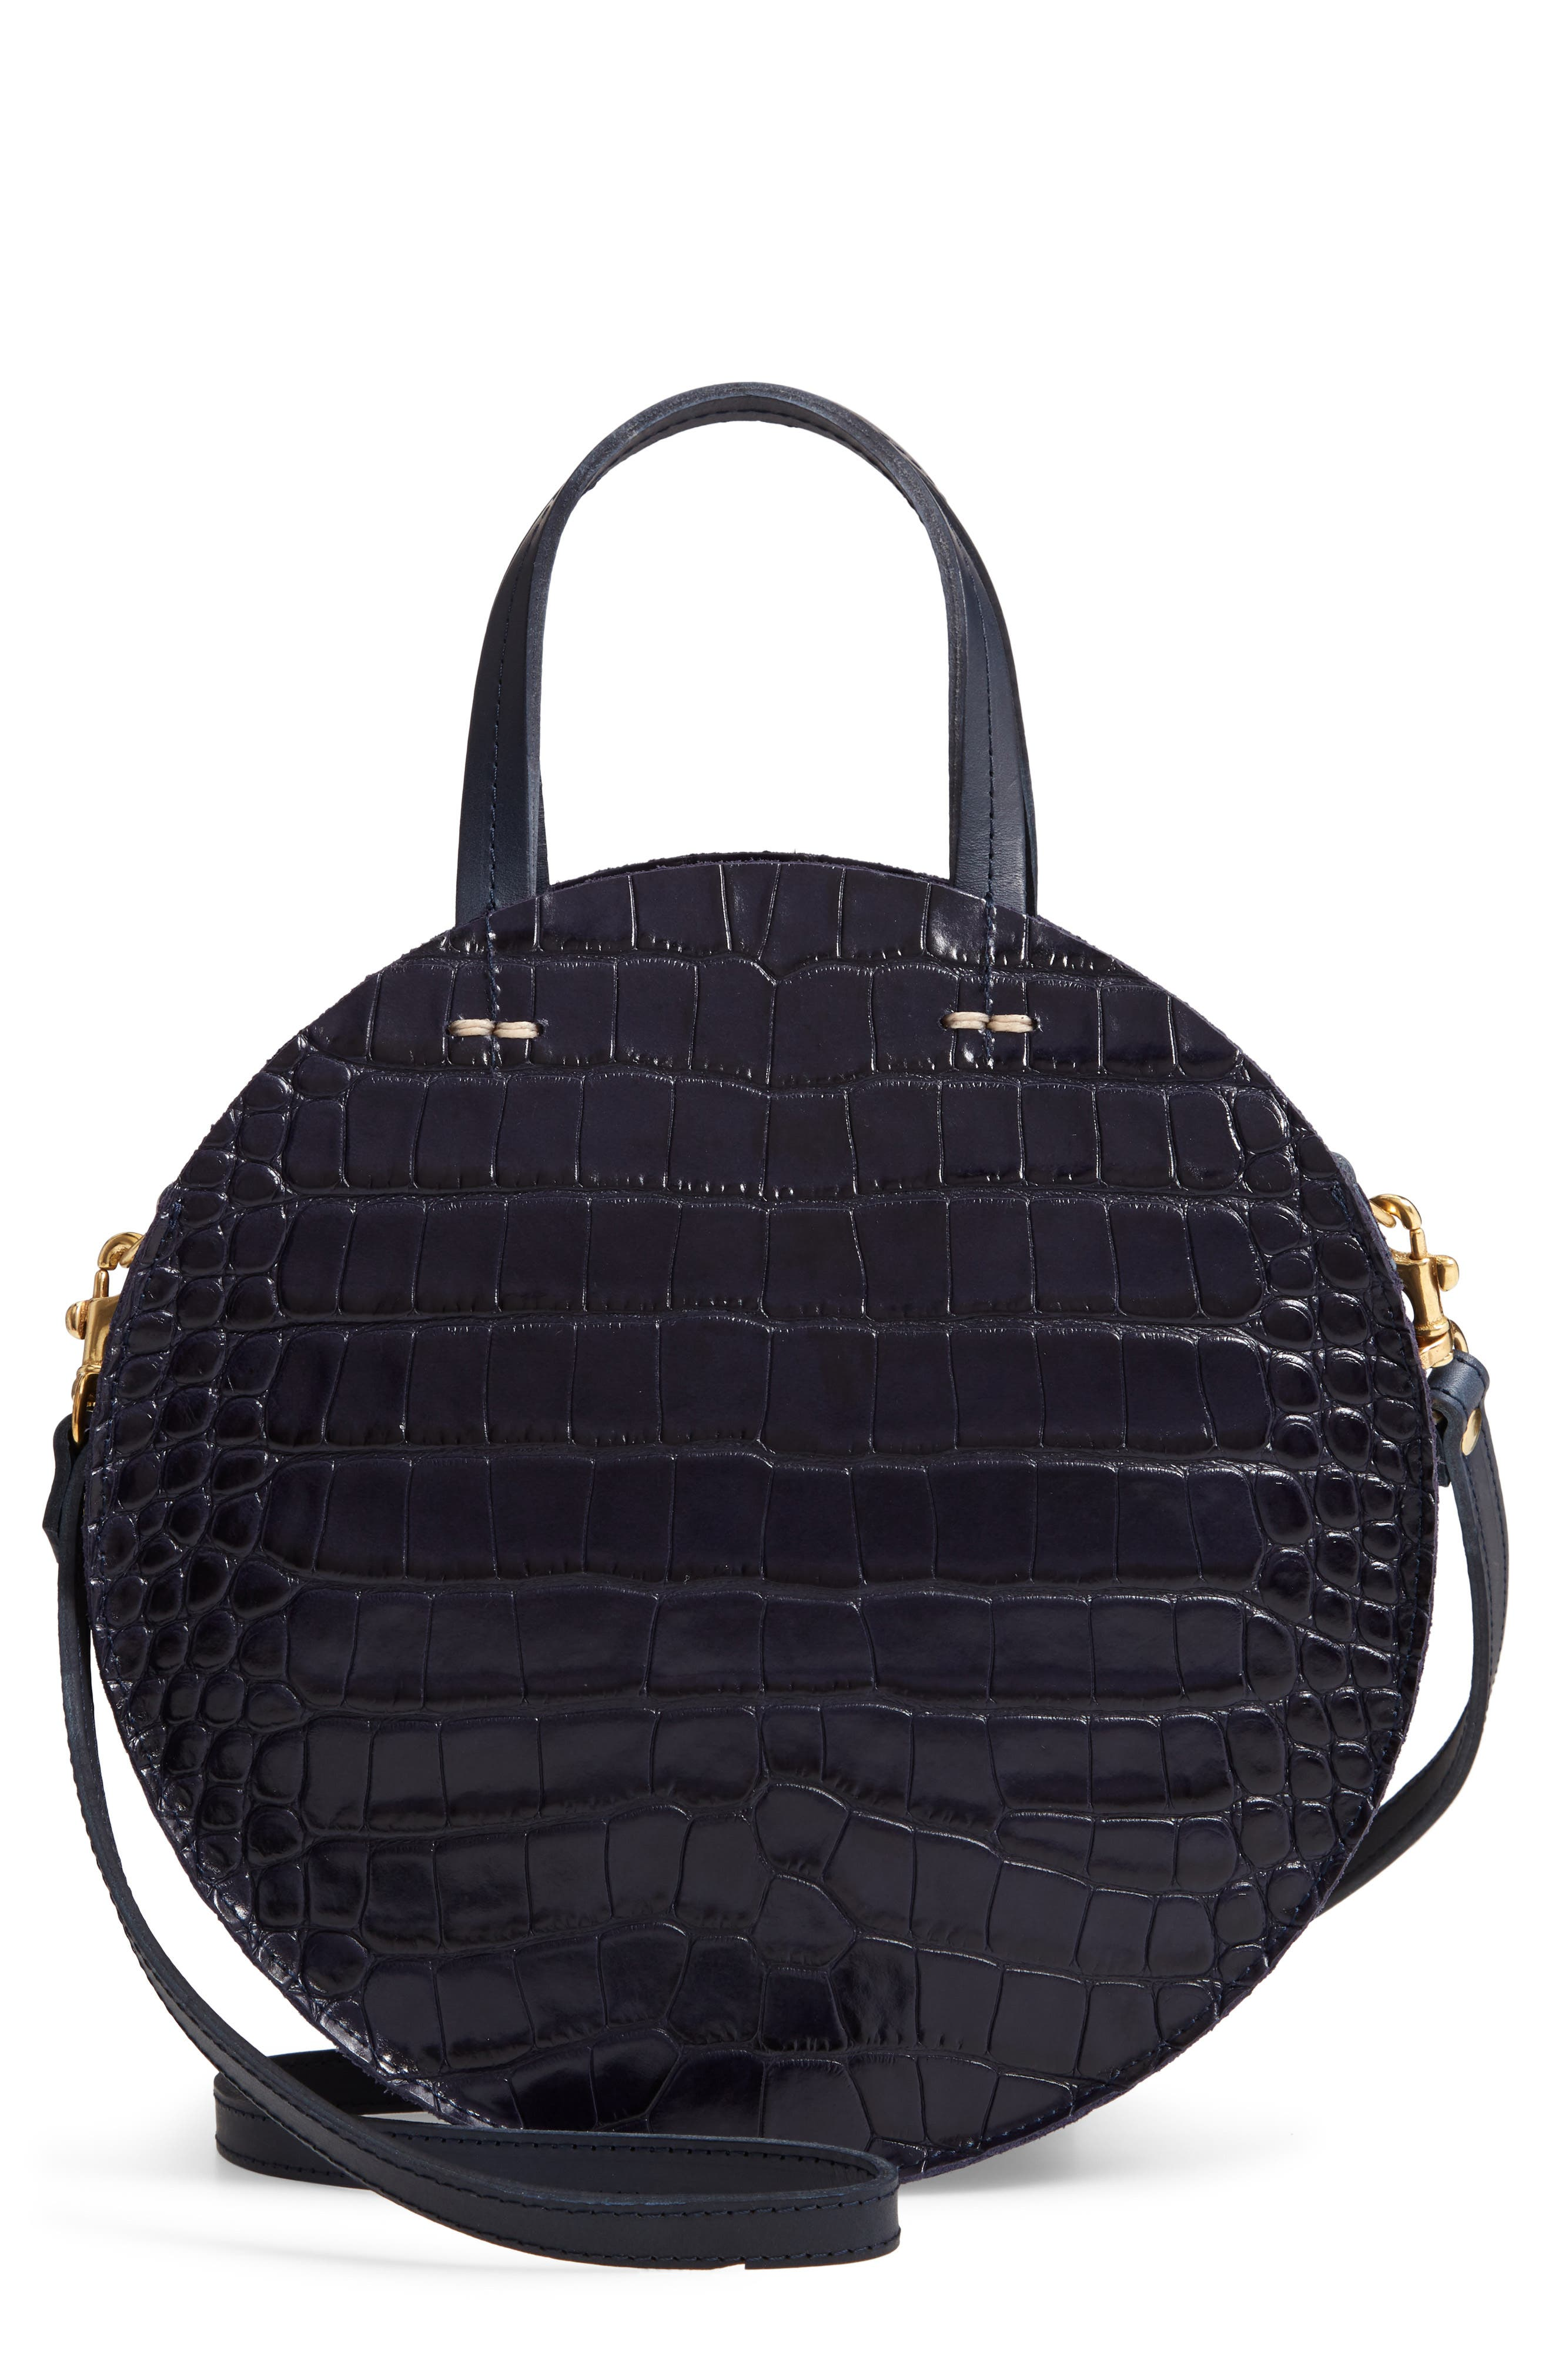 CLARE V Clare V Petit Alistair Croc Embossed Leather Circular Crossbody Bag - Black in Midnight Croco